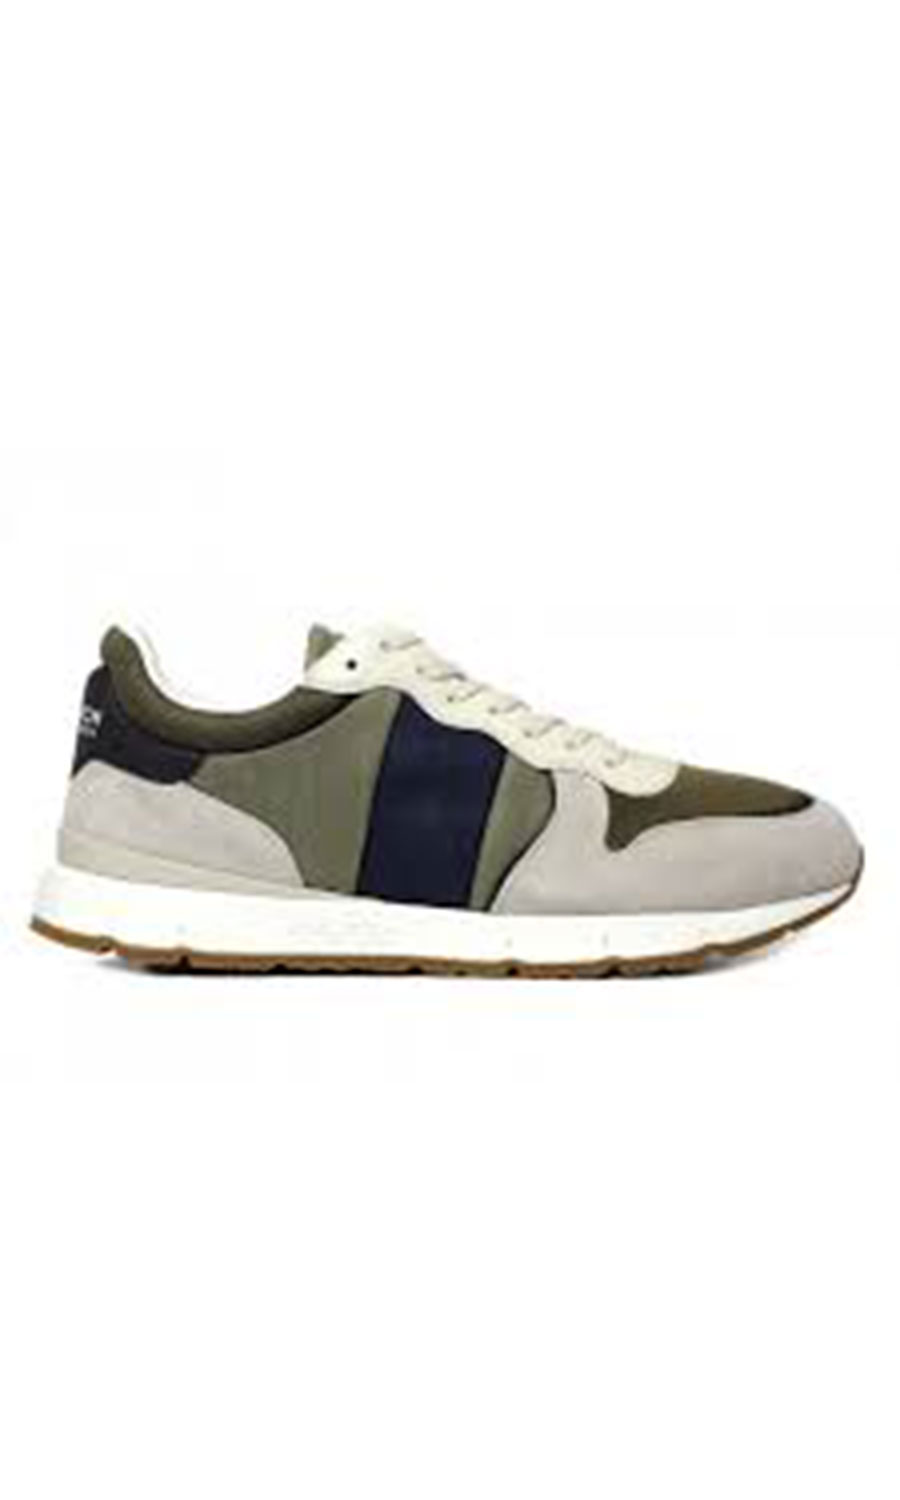 WOOLRICH Uomo Sneaker Suede Shipped Crema Verde